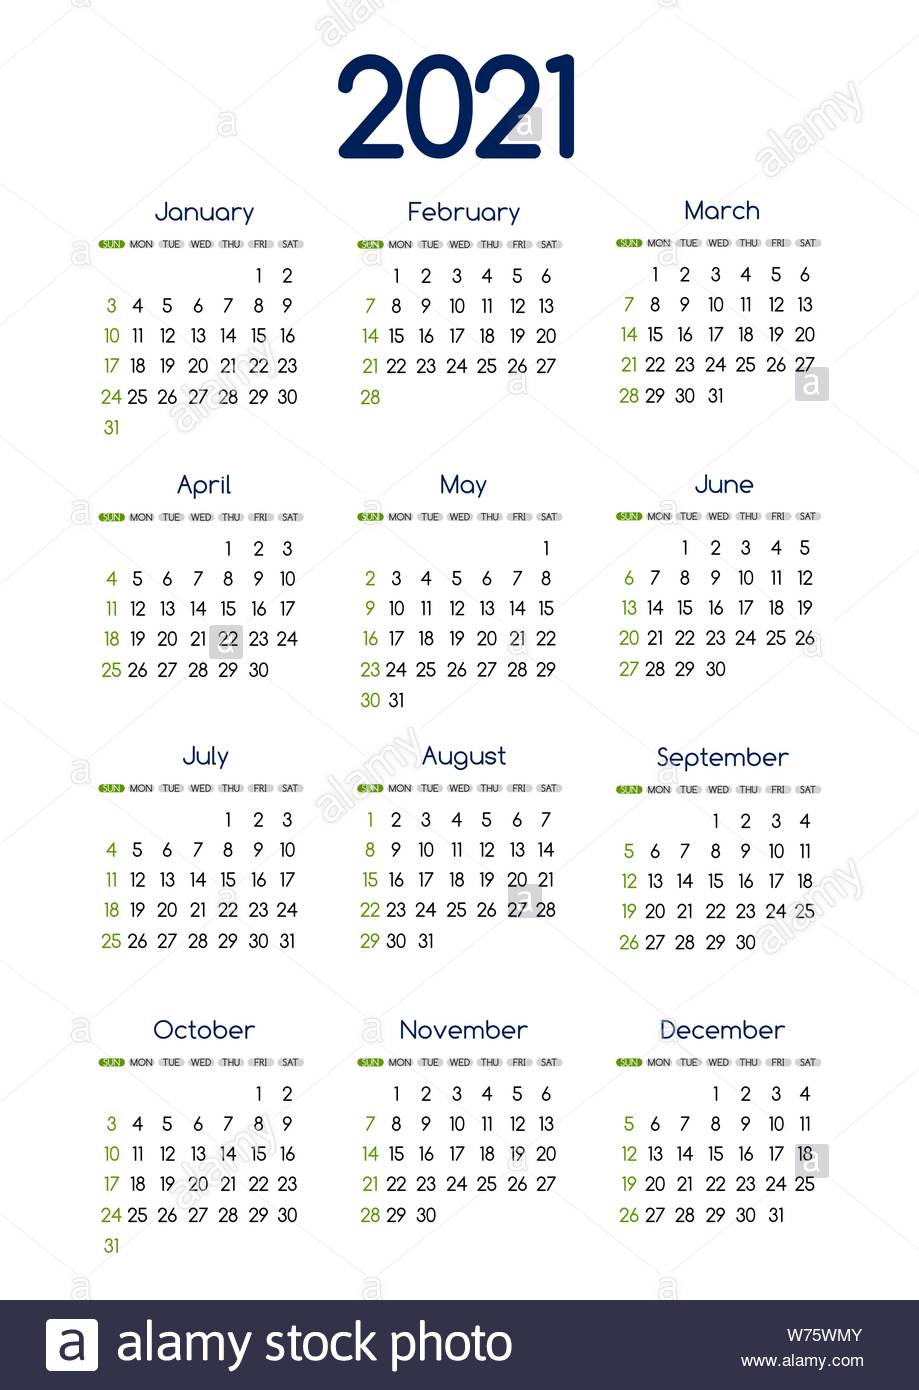 Calendar 2021 High Resolution Stock Photography And Images throughout 2021-2021 Monthly Planner: 2 Year